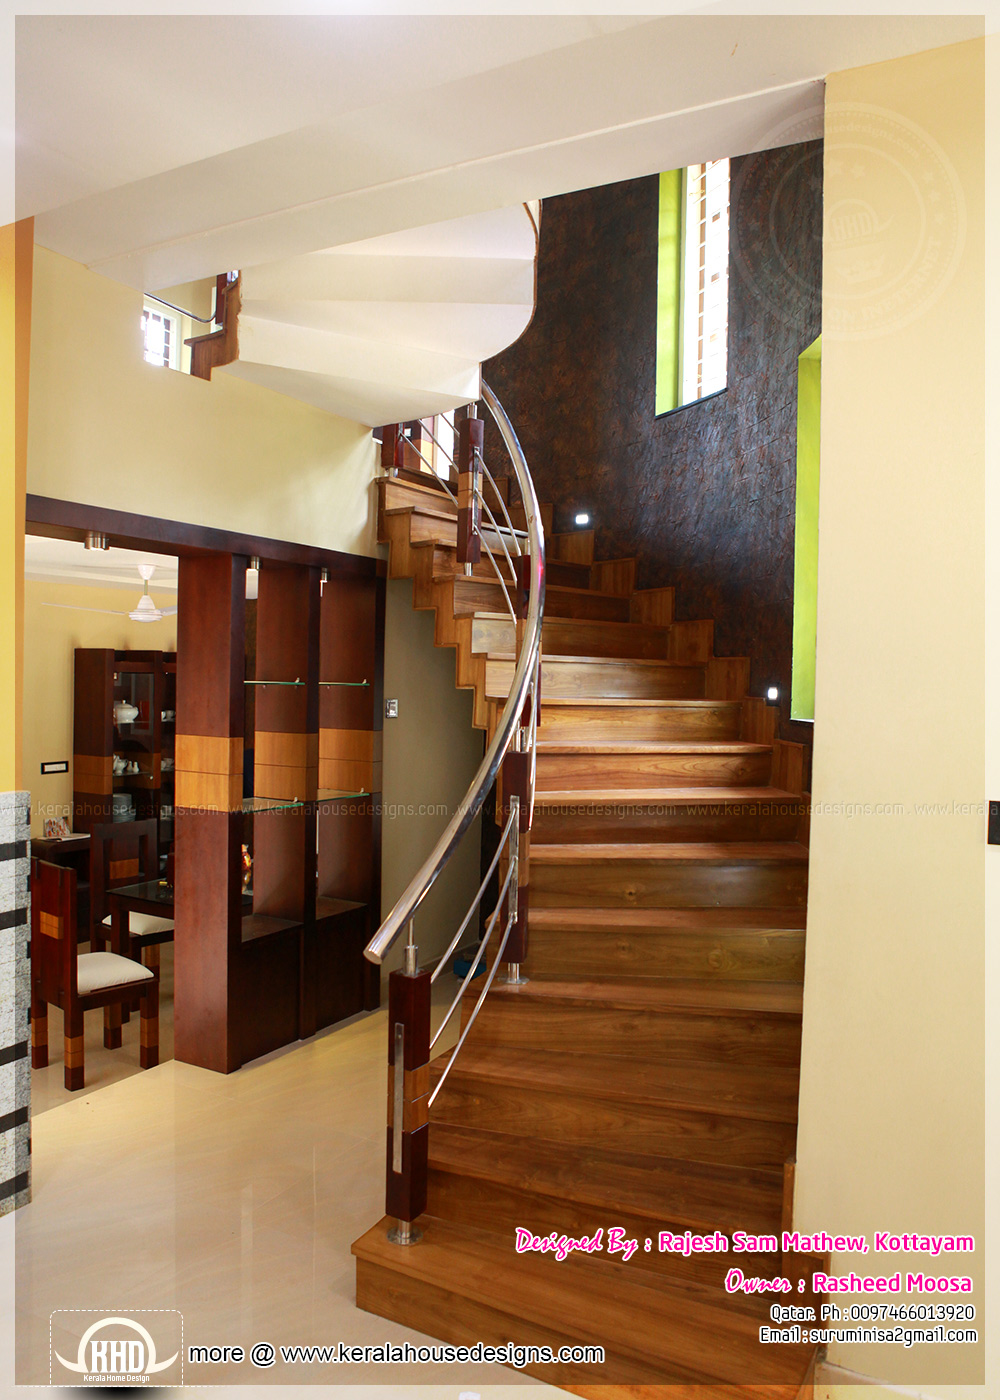 Modern Home Designs: Kerala Interior Design With Photos